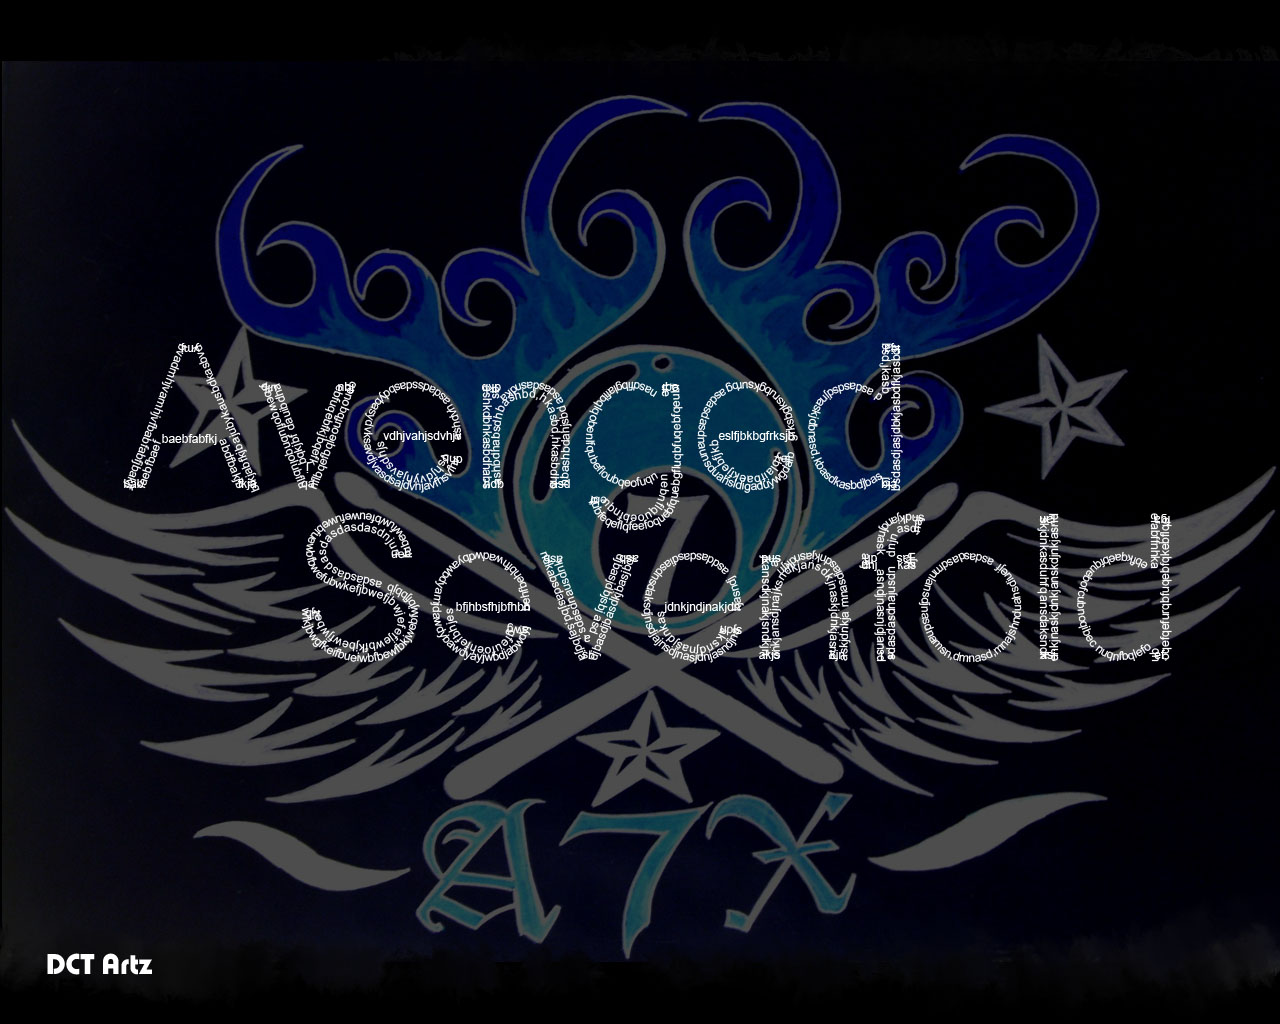 Avenged sevenfold the rev wallpaper best cool wallpaper hd download avenged sevenfold the rev wallpaper best cool wallpaper hd download 1280x1024 voltagebd Choice Image